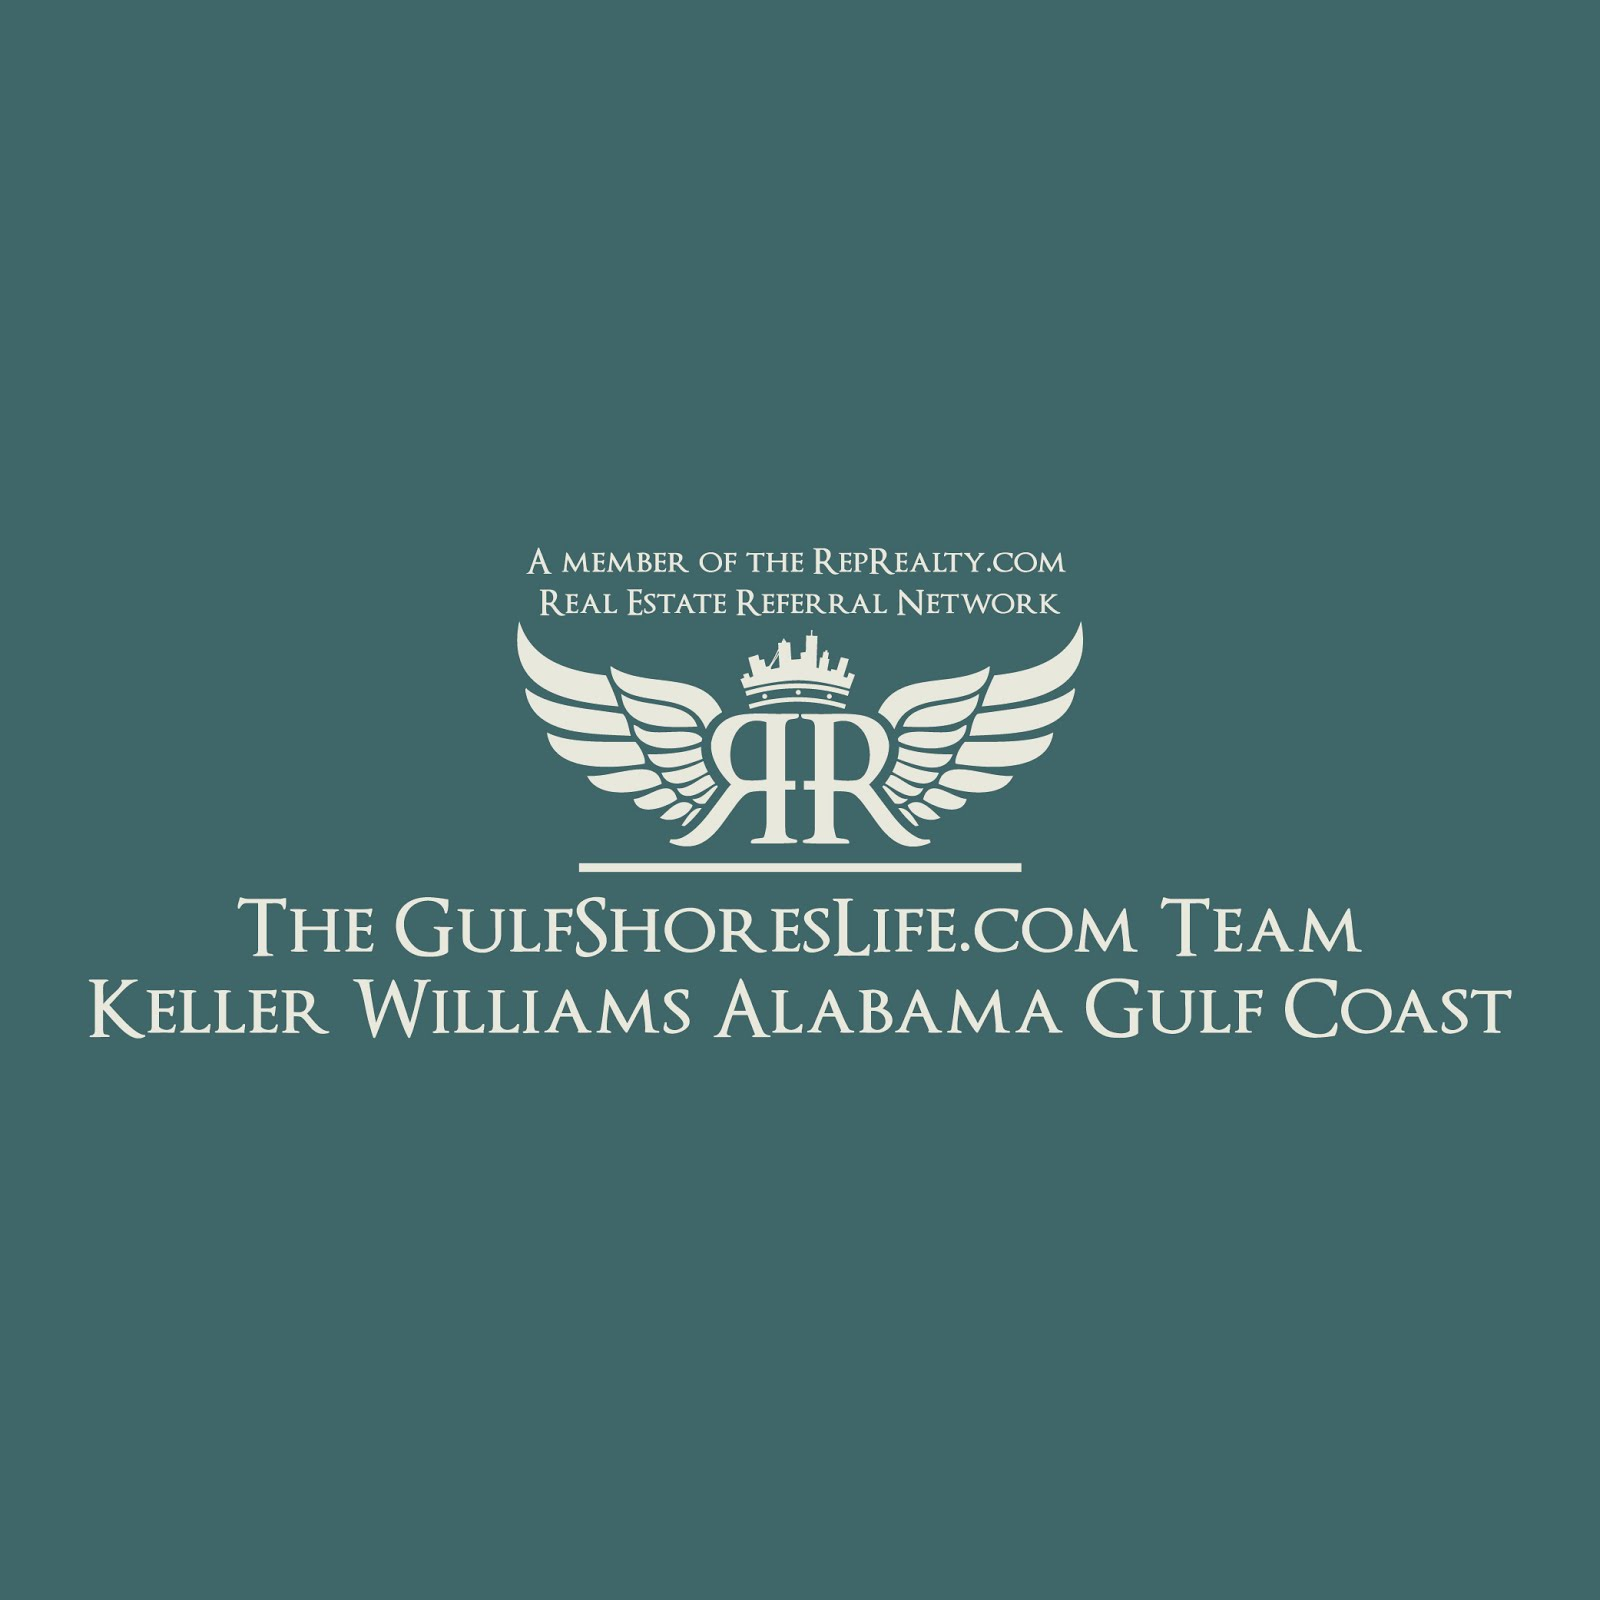 Cal Carter - Keller Williams Alabama Gulf Coast